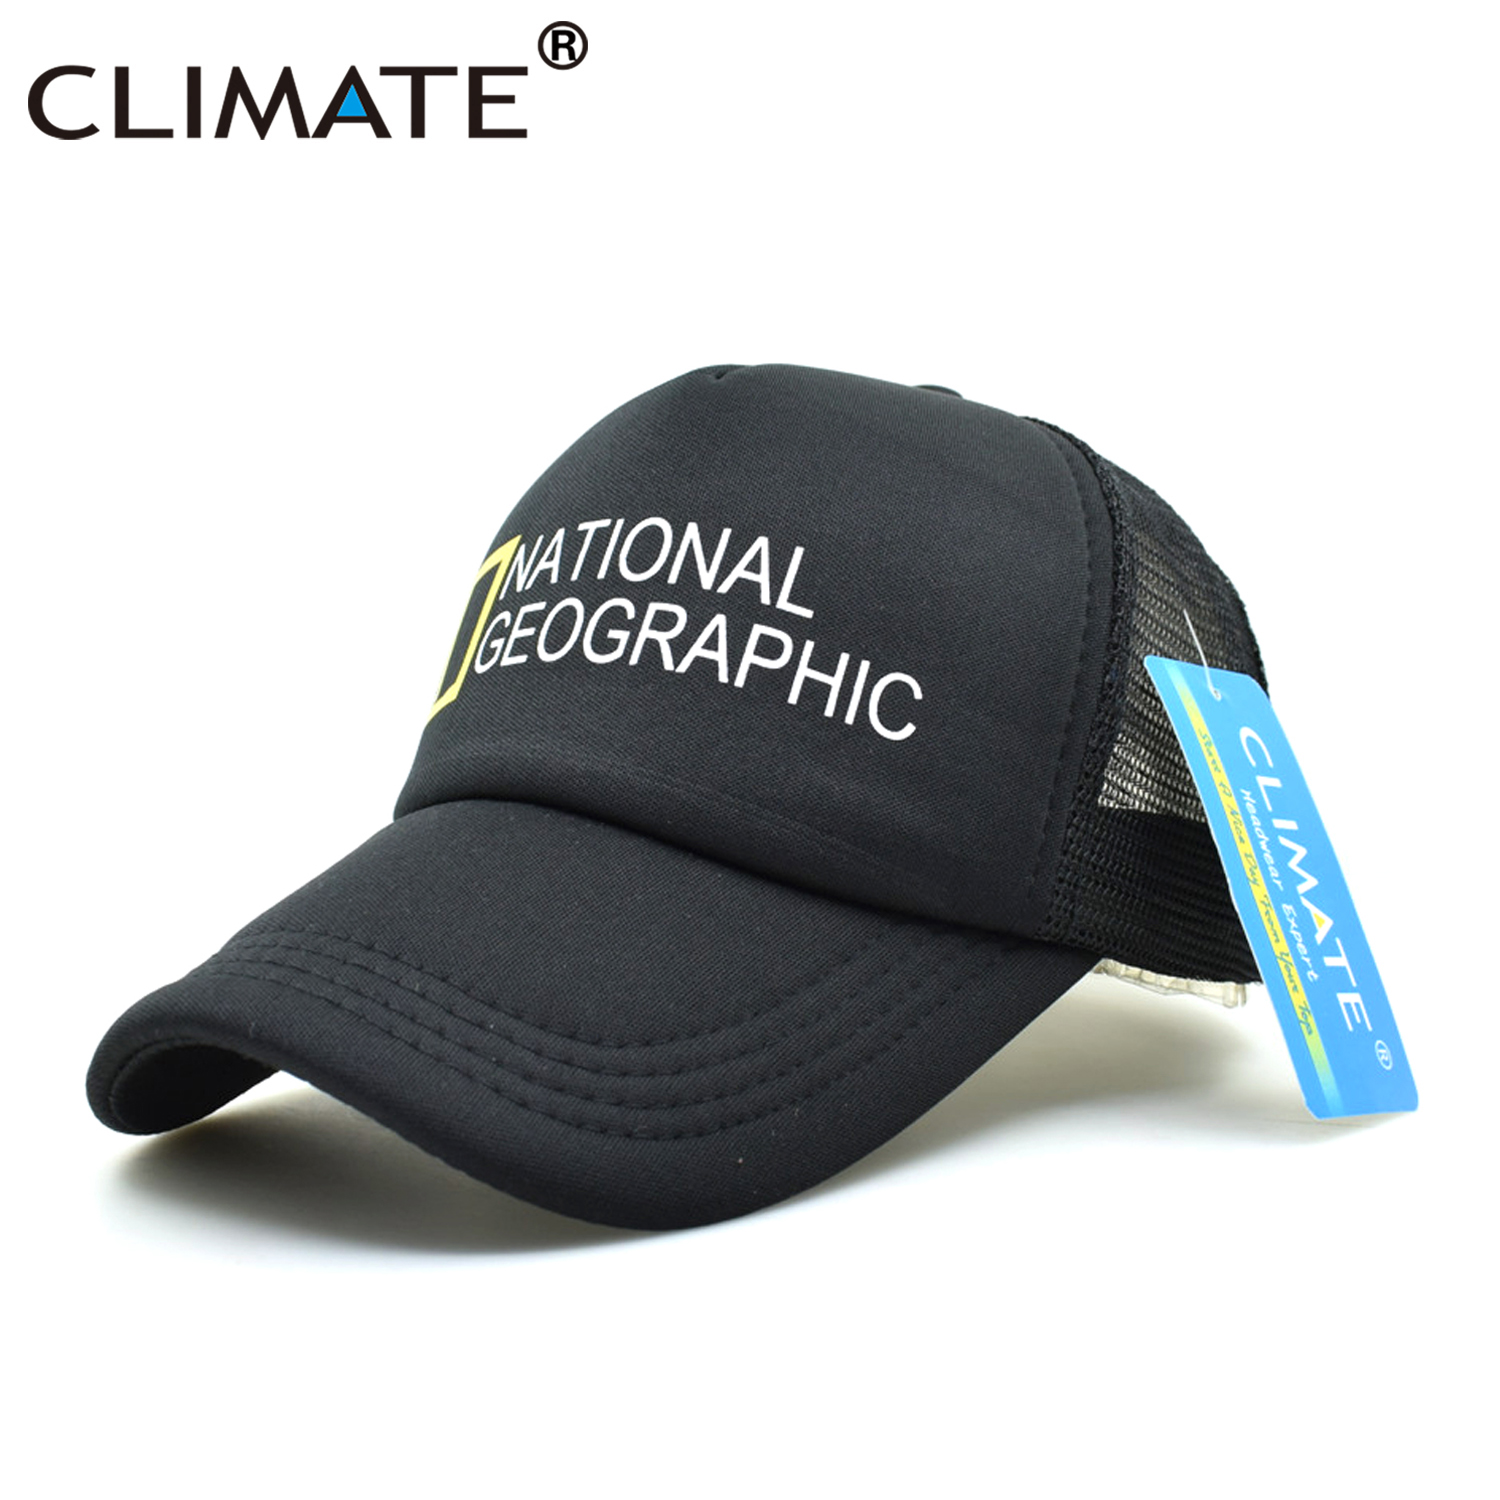 KLIMAAT Heren New Trucker Caps National Geographic Channel Hot Summer - Kledingaccessoires - Foto 4